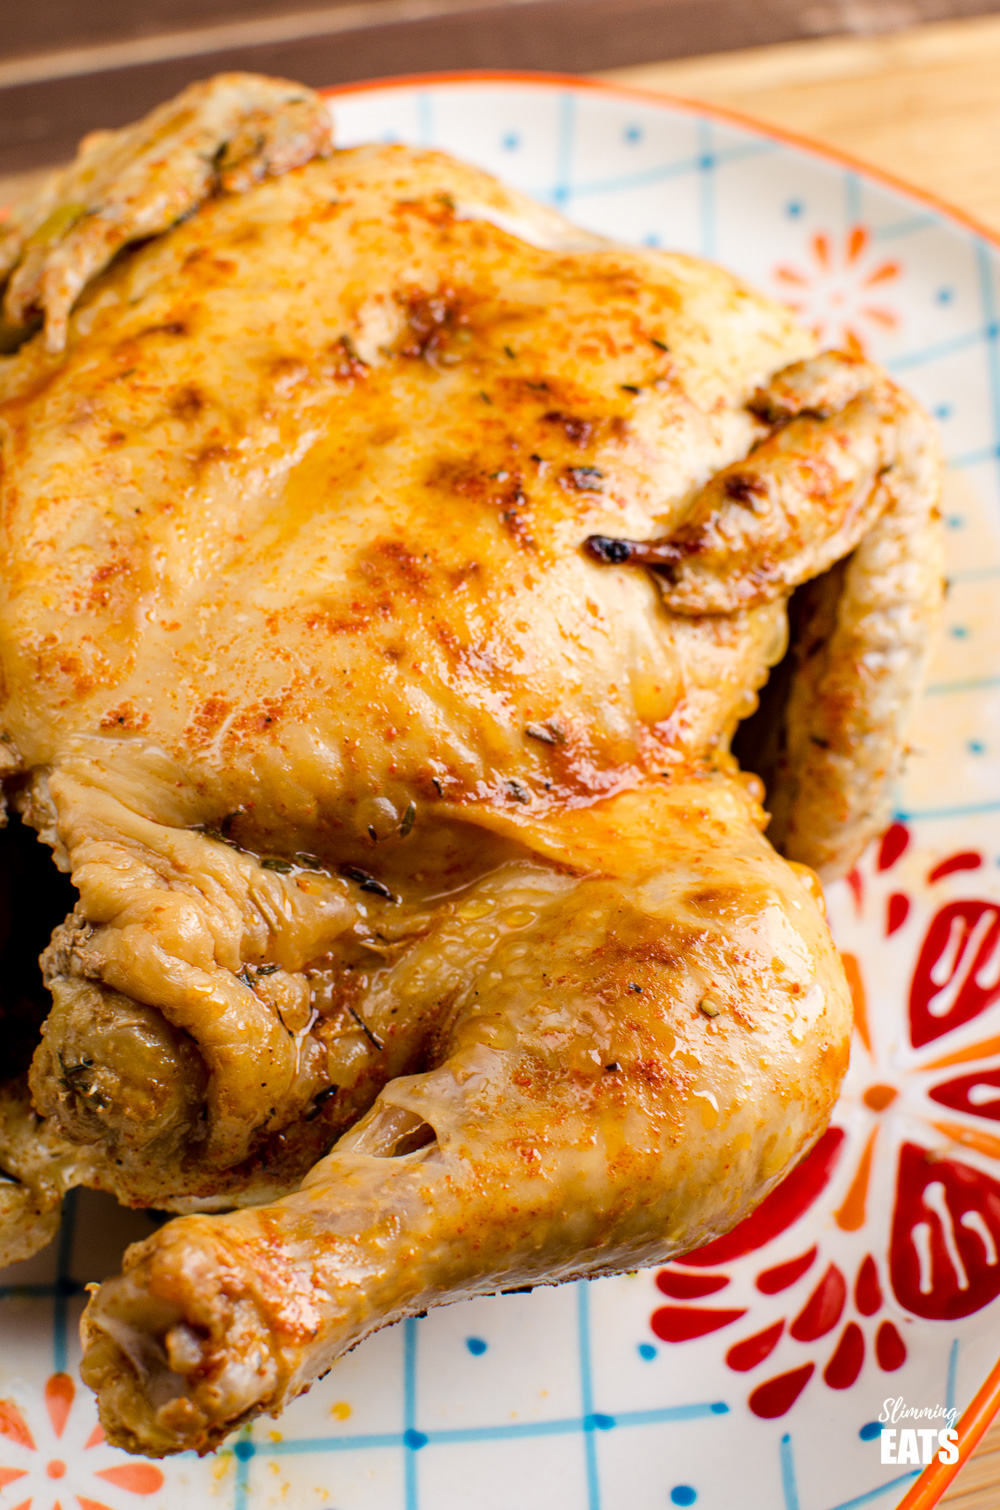 pressure cooked whole chicken on a patterned oval plate